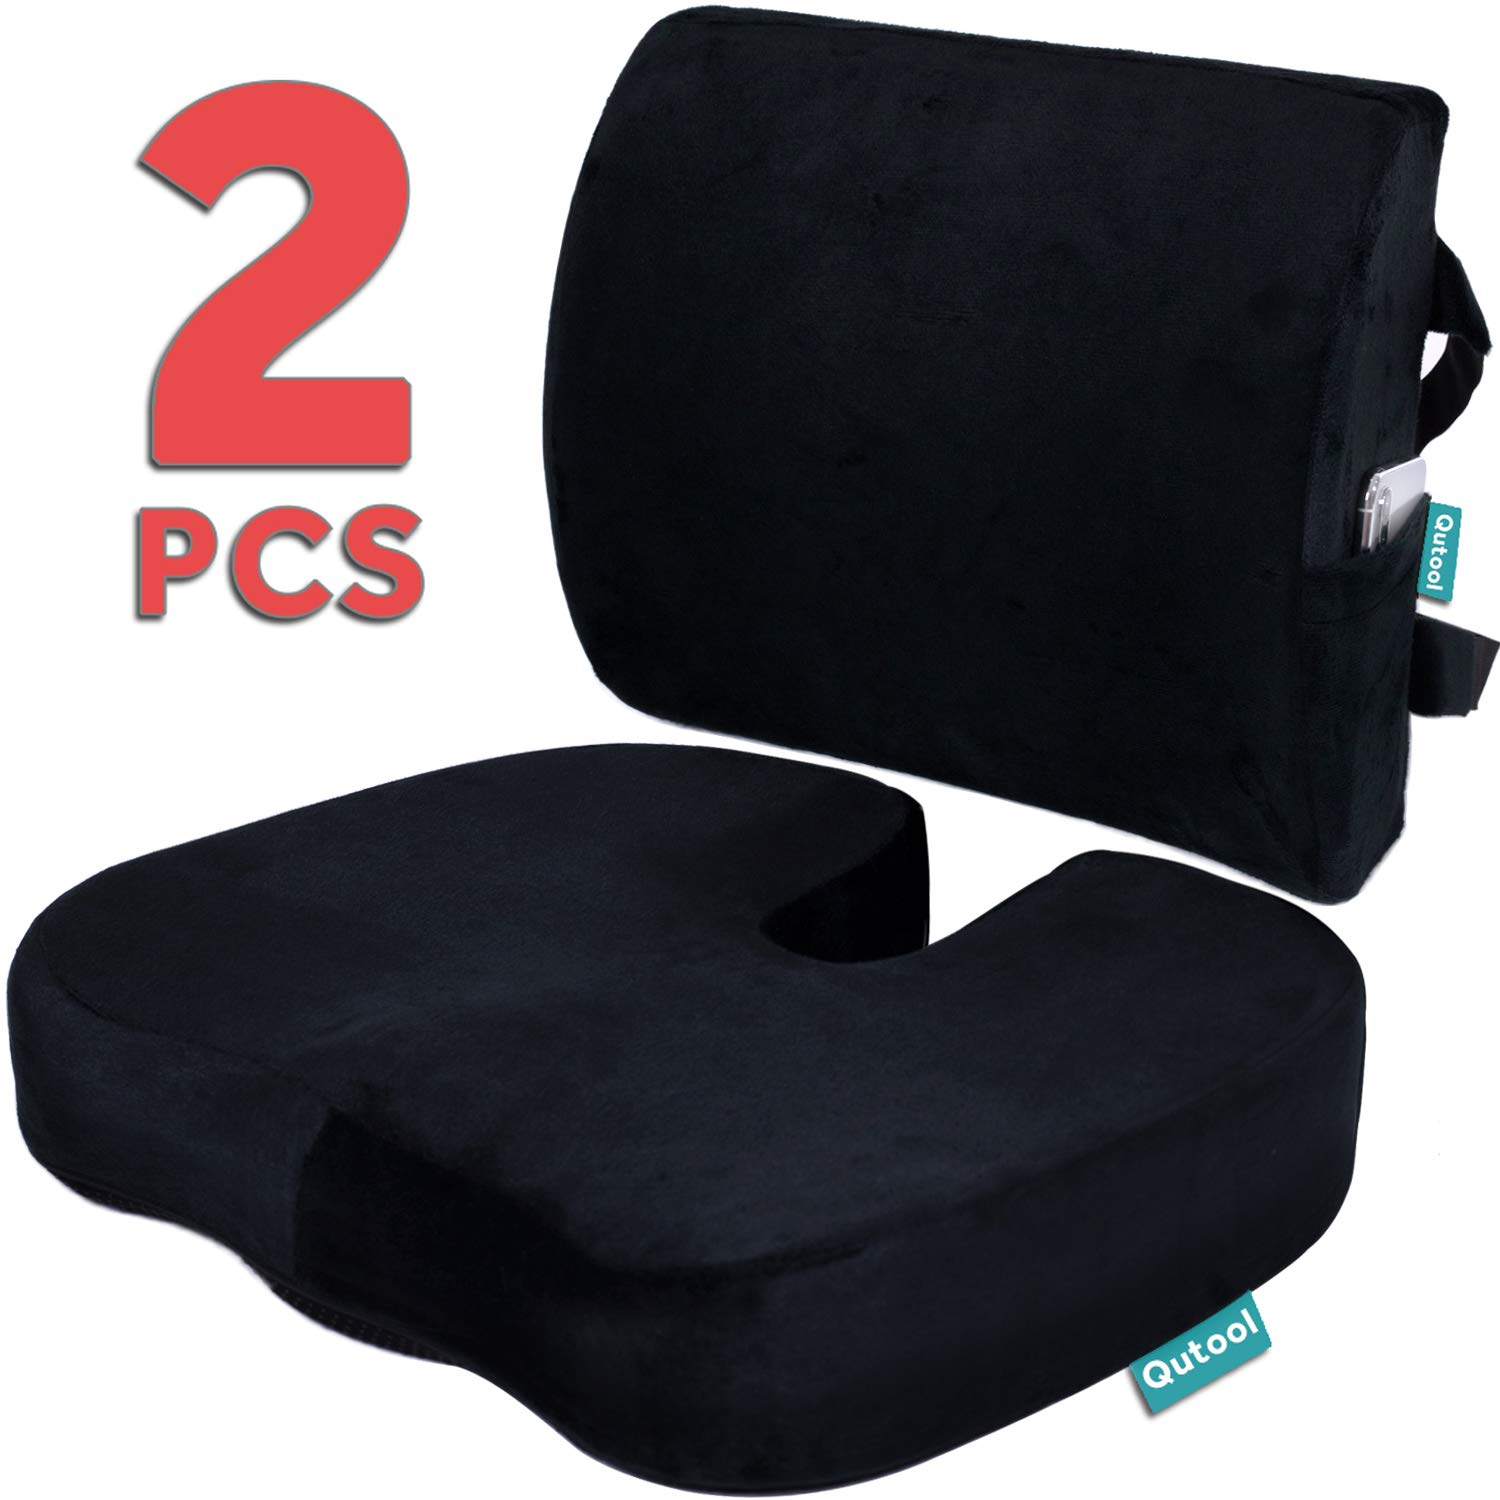 Seat Cushion Coccyx Orthopedic Memory Foam and Lumbar Support Pillow for Office Chair and Car Chair Cushion for Low Back Support, Tailbone Pain, Sciatica Relief Black Qutool by Qutool